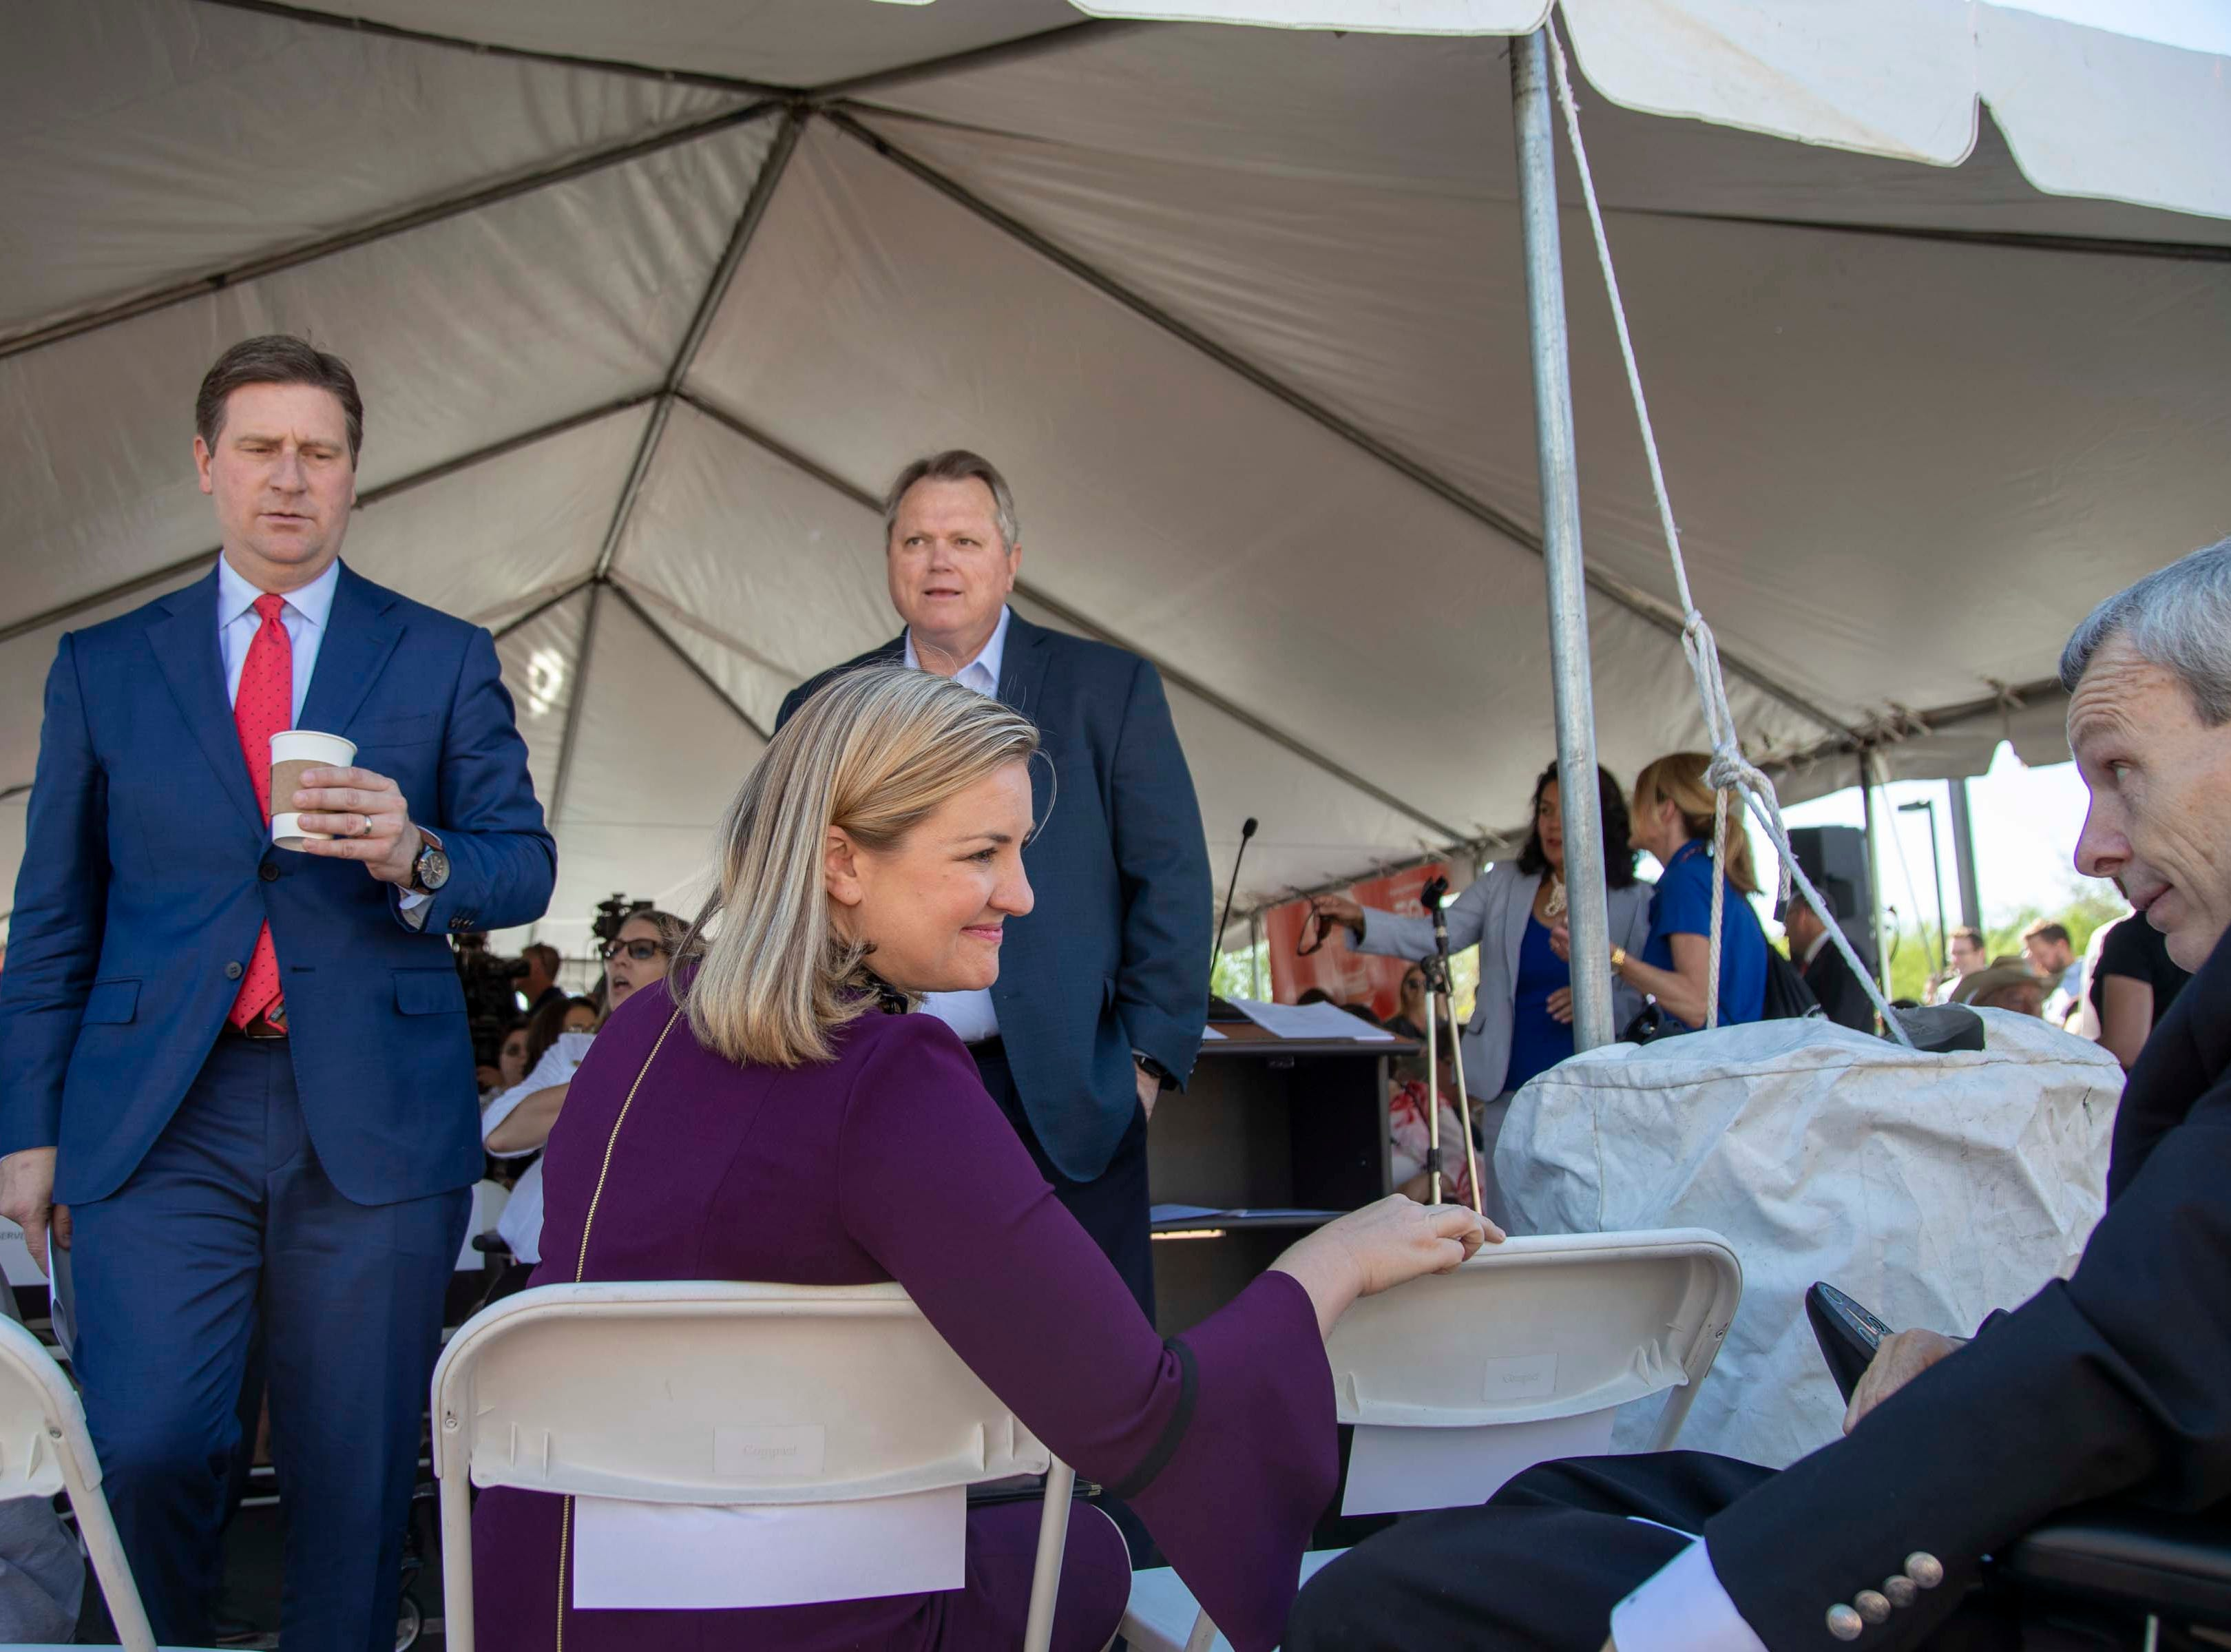 Phoenix Mayor Kate Gallego, talks to Phil Pangrazio, President and Chief Executive Officer of Ability360, during the unveiling the new light 50th Street and Washington rail station.